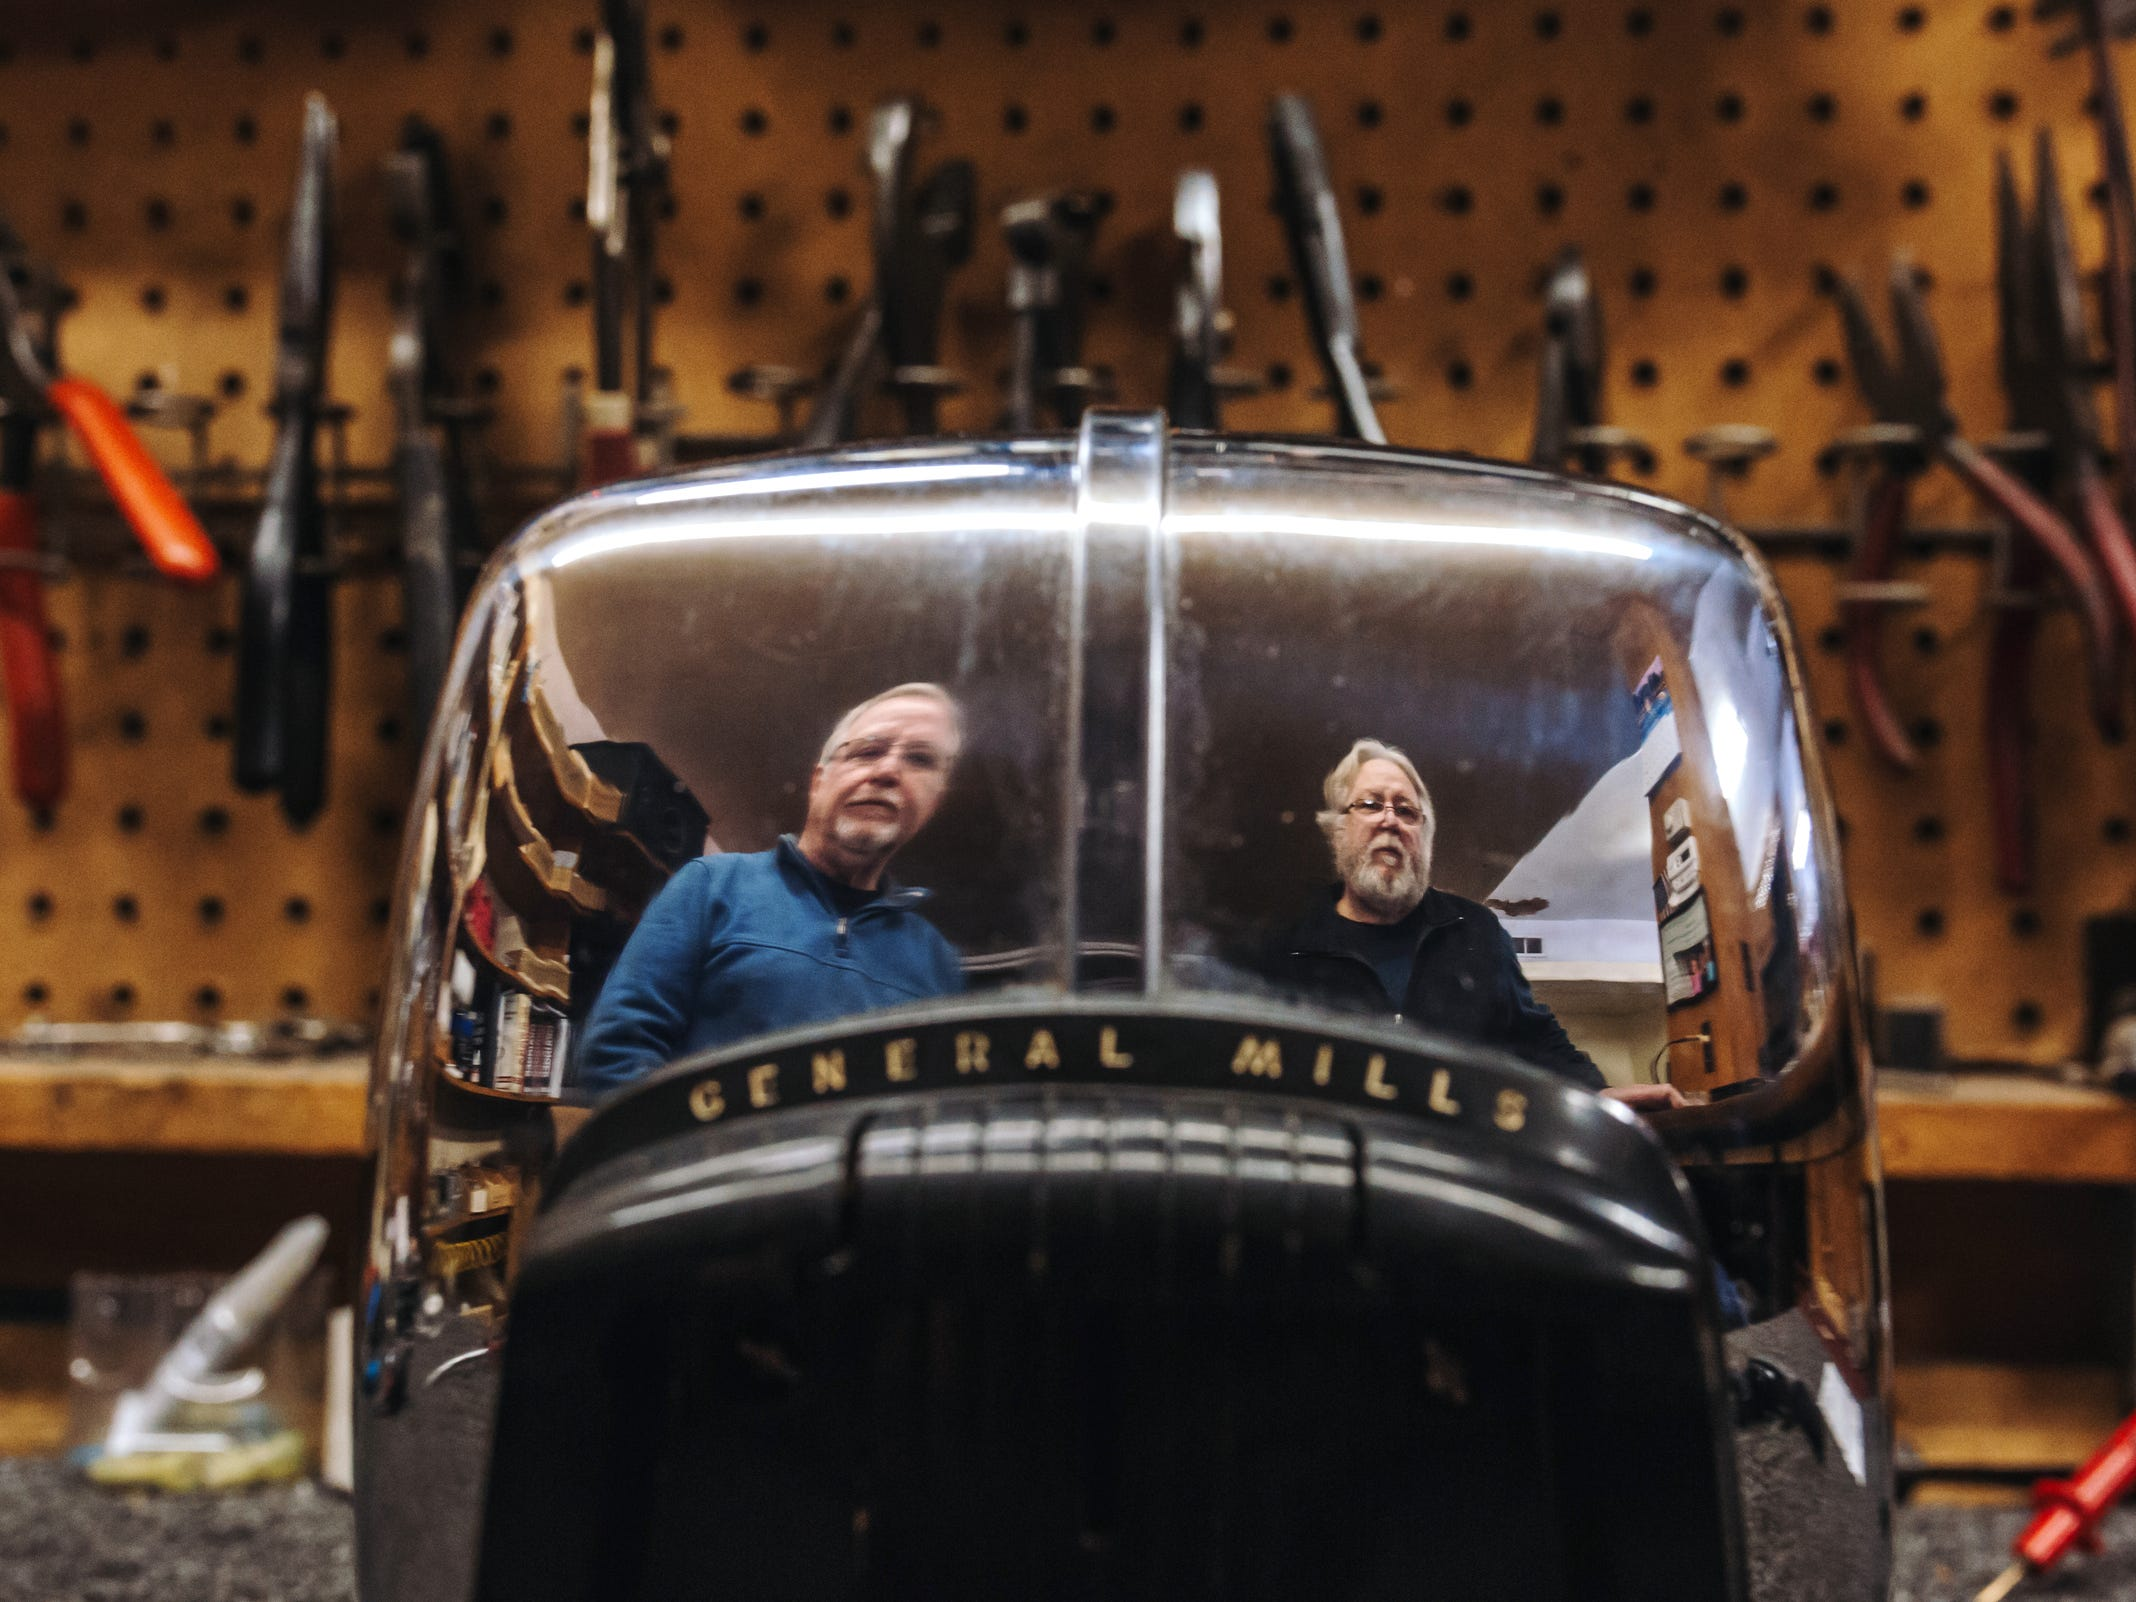 McNichols Electric co-owners Dave Kehoe (left) and his brother Pat Kehoe are seen reflected in an old General Mills toaster being repaired at their small appliance repair shop on Detroit's west side on Tuesday, March 20, 2018. 